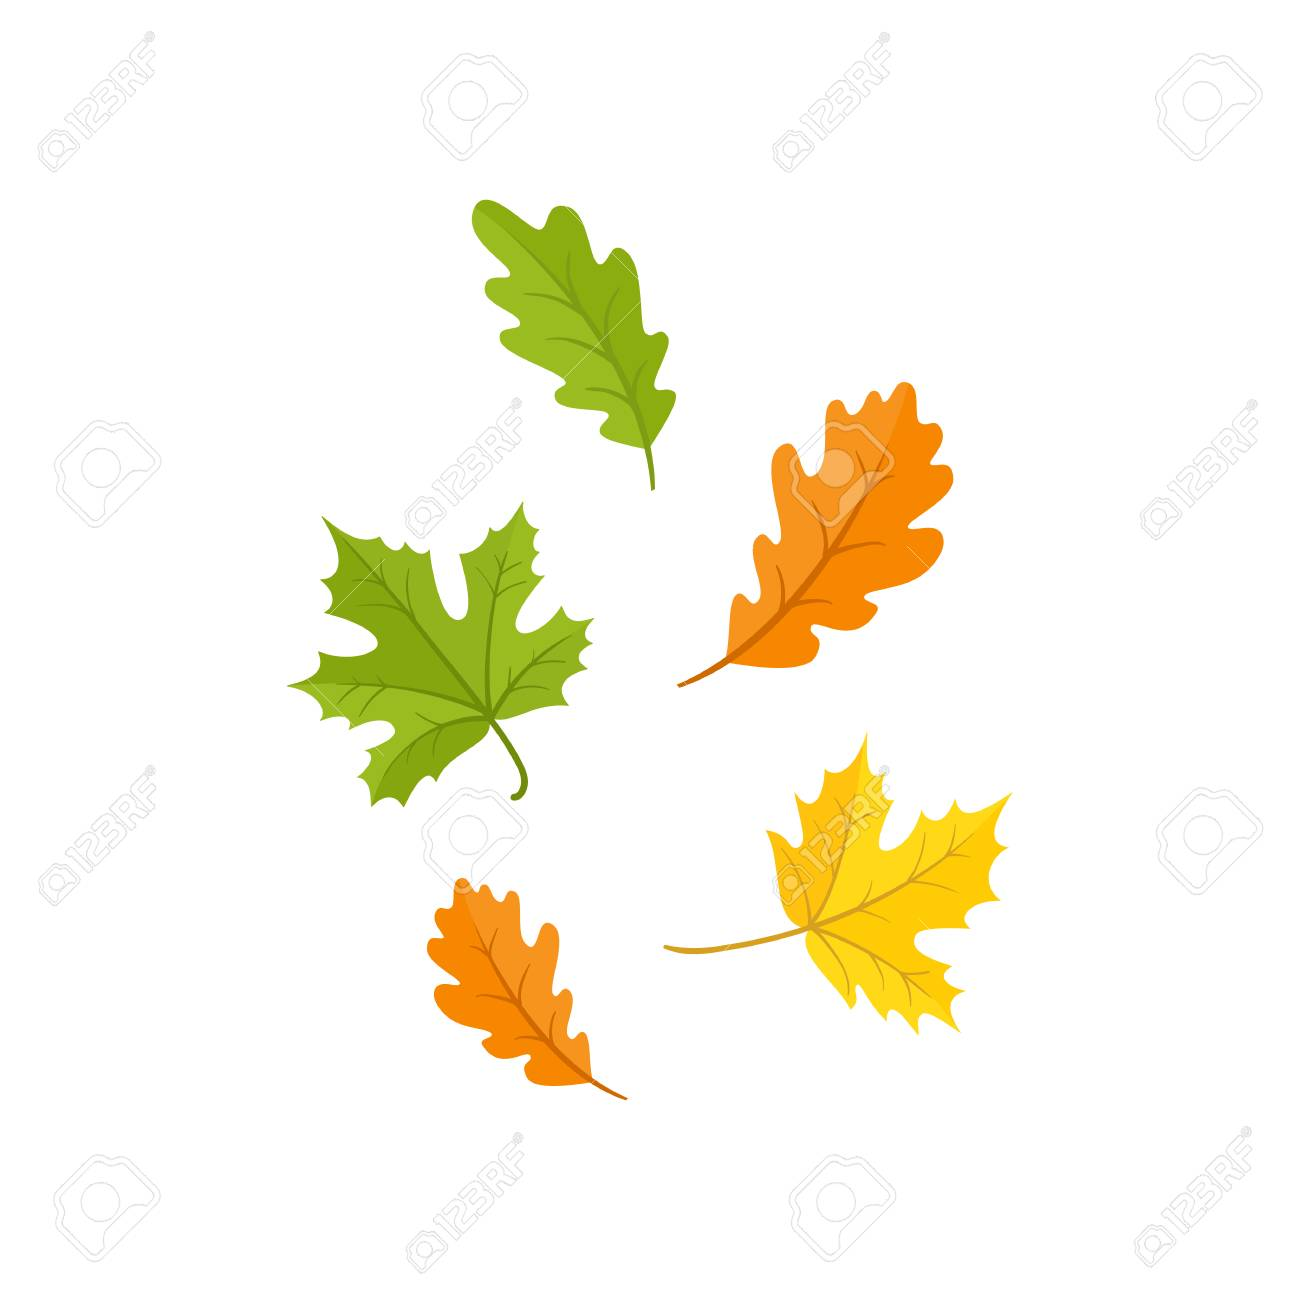 Colorful Set Of Oak And Maple Fall Autumn Leaves Cartoon Style Royalty Free Cliparts Vectors And Stock Illustration Image 83141711